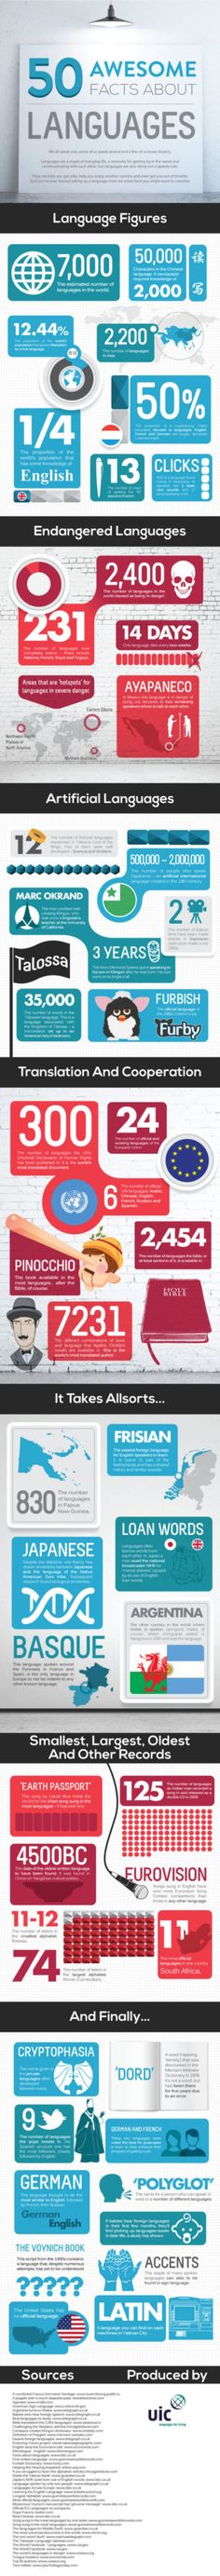 50 highly interesting facts about languages #infographic